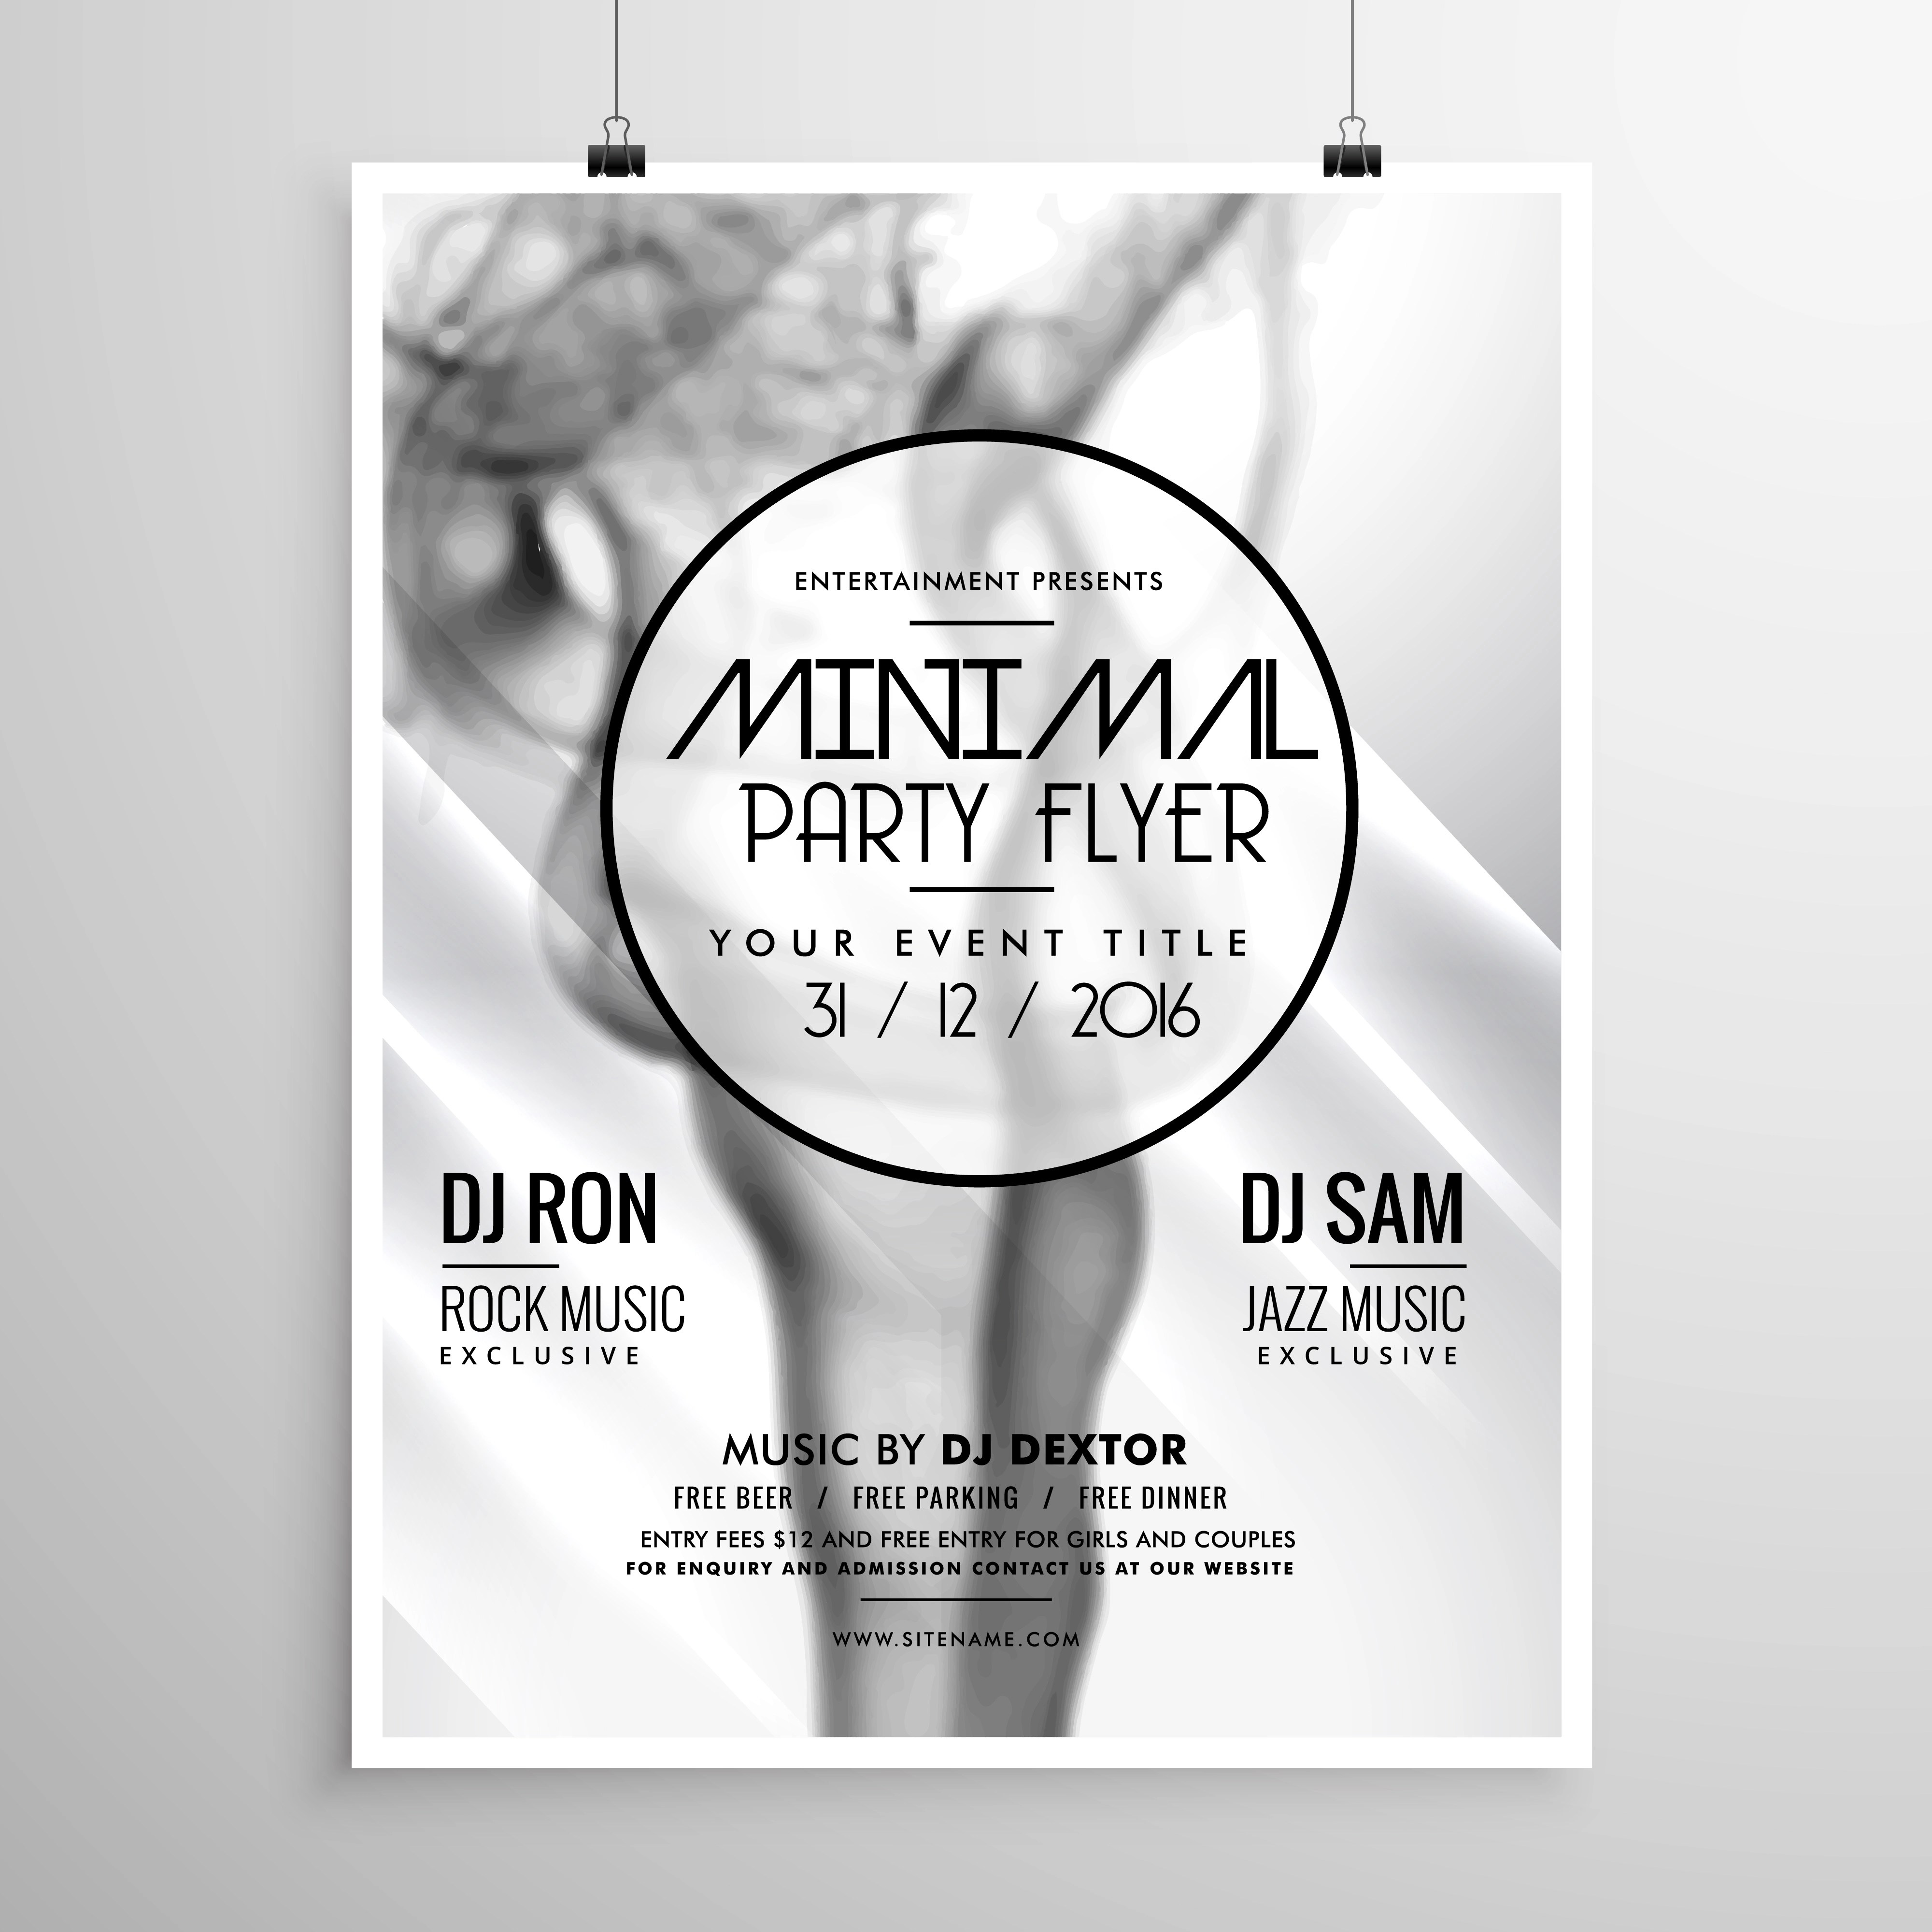 Abstract Party Flyer Template With Smoke Background - Download Free Vector  Art, Stock Graphics & Images